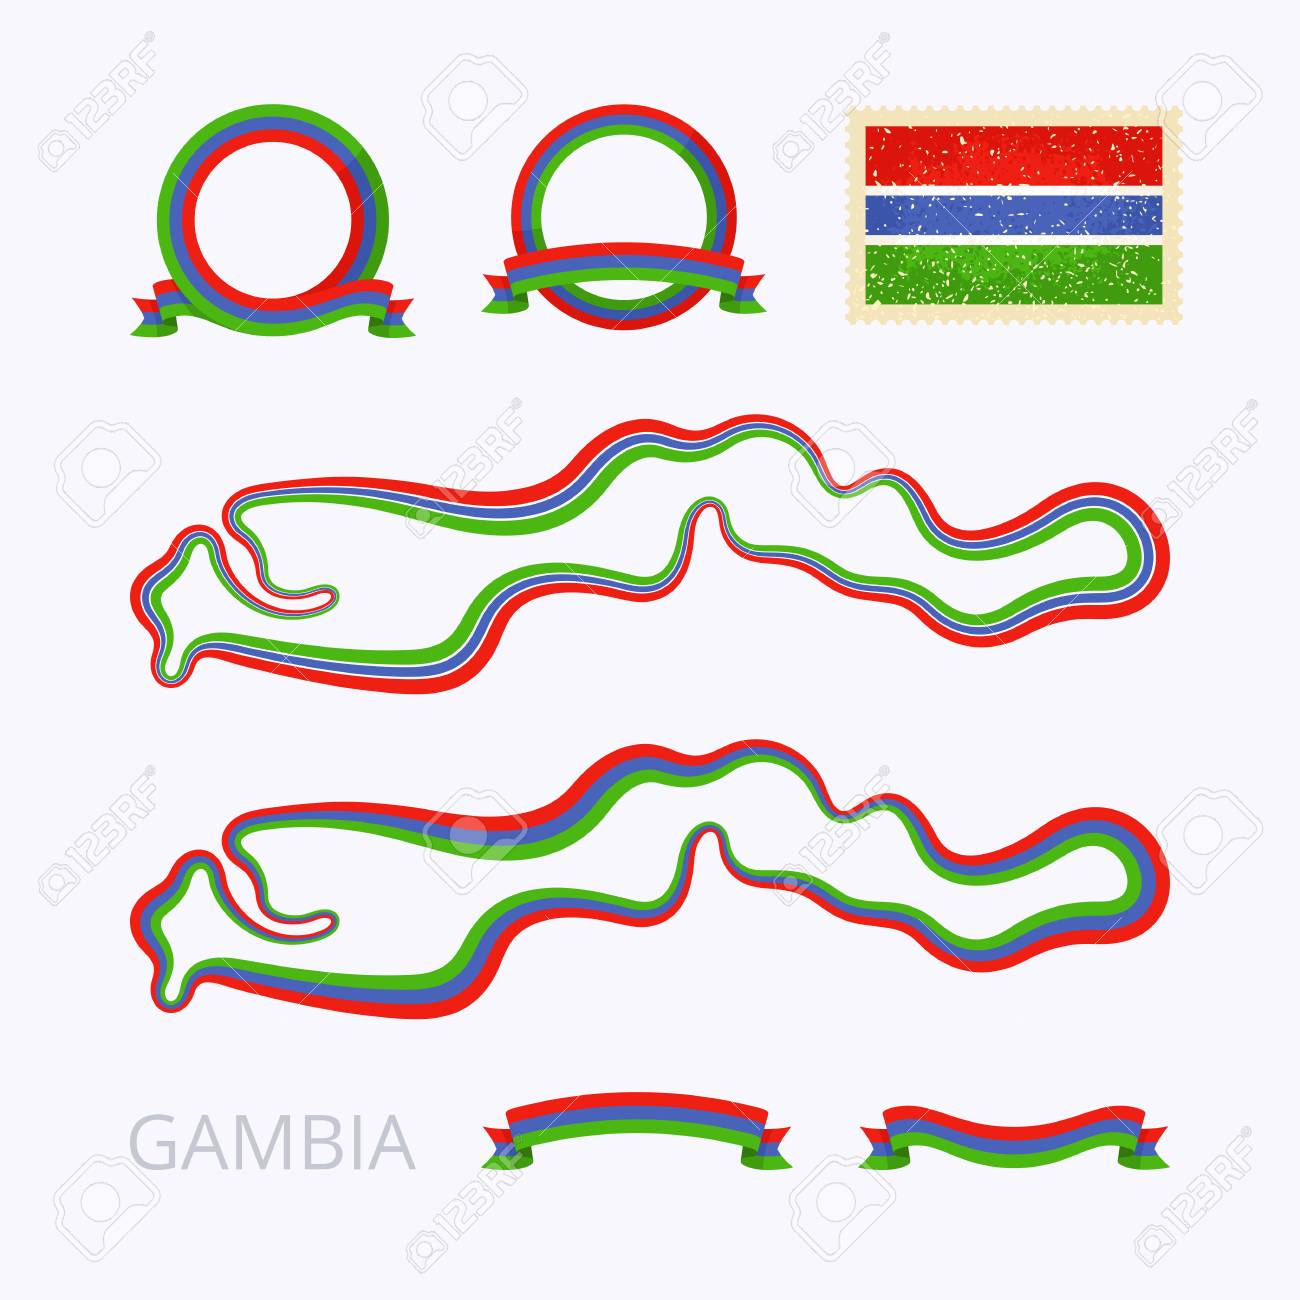 Outline Map Of The Gambia Border Is Marked With Ribbon In National - Package of map colors